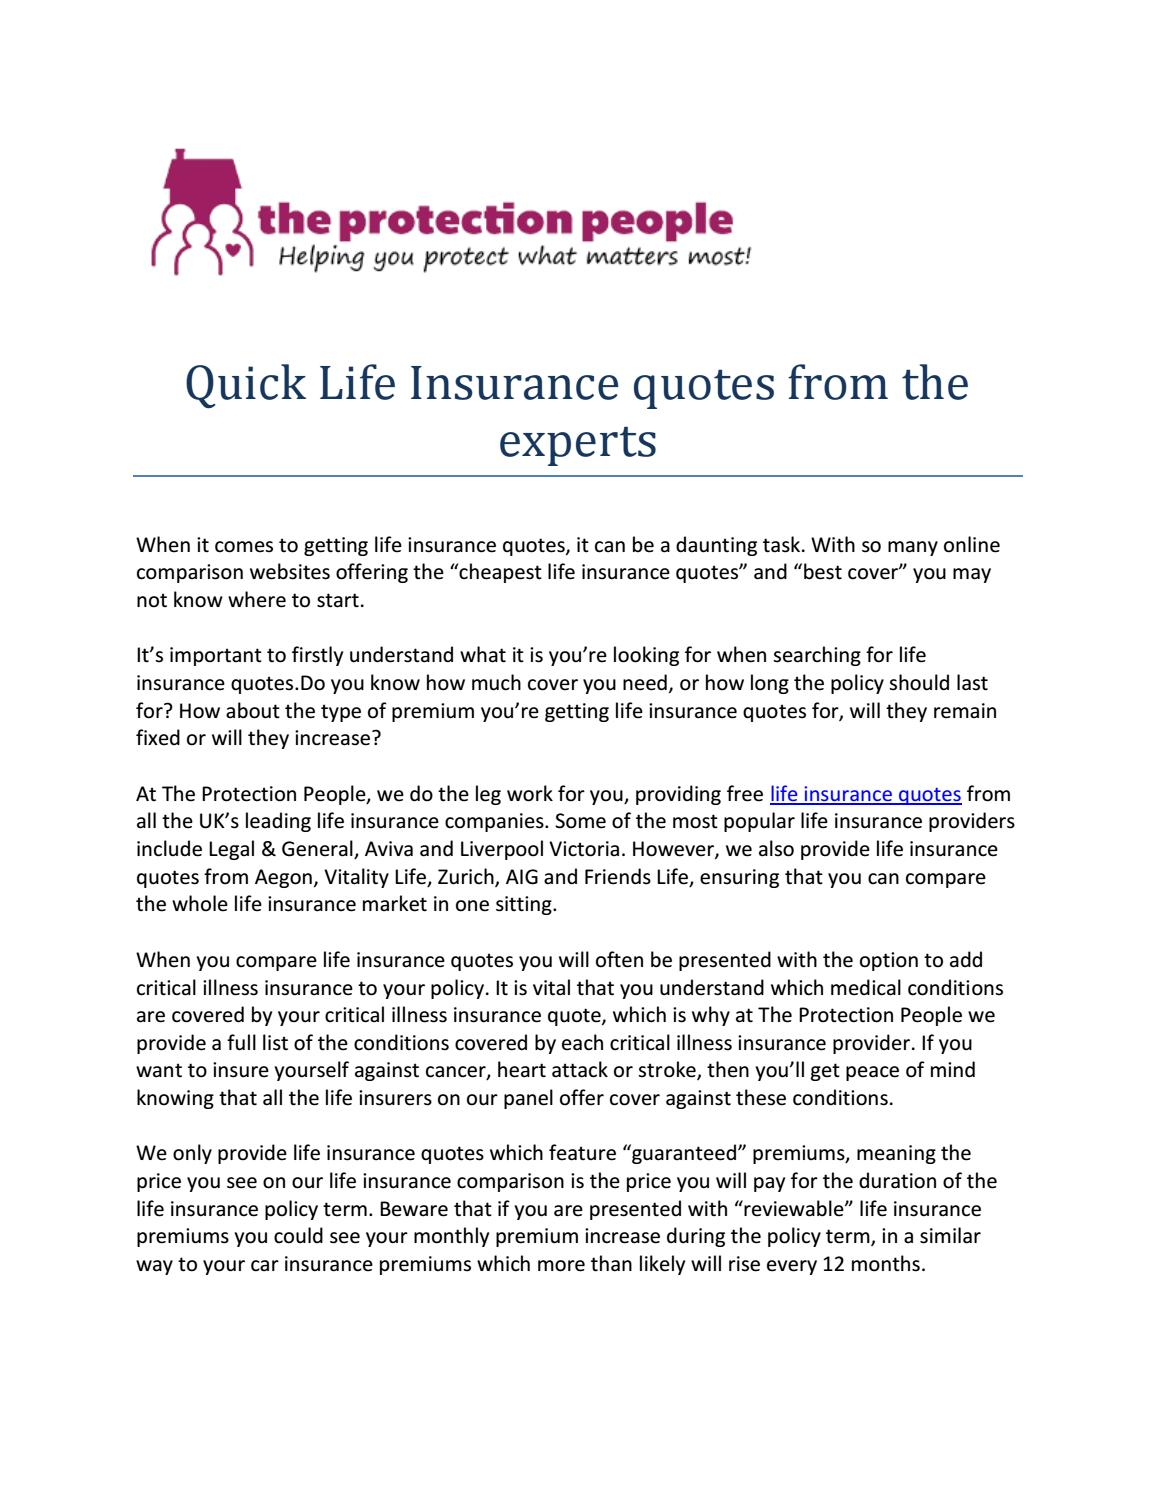 Looking For Life Insurance Quotes Pleasing The Protection People  Quick Life Insurance Quotes From The